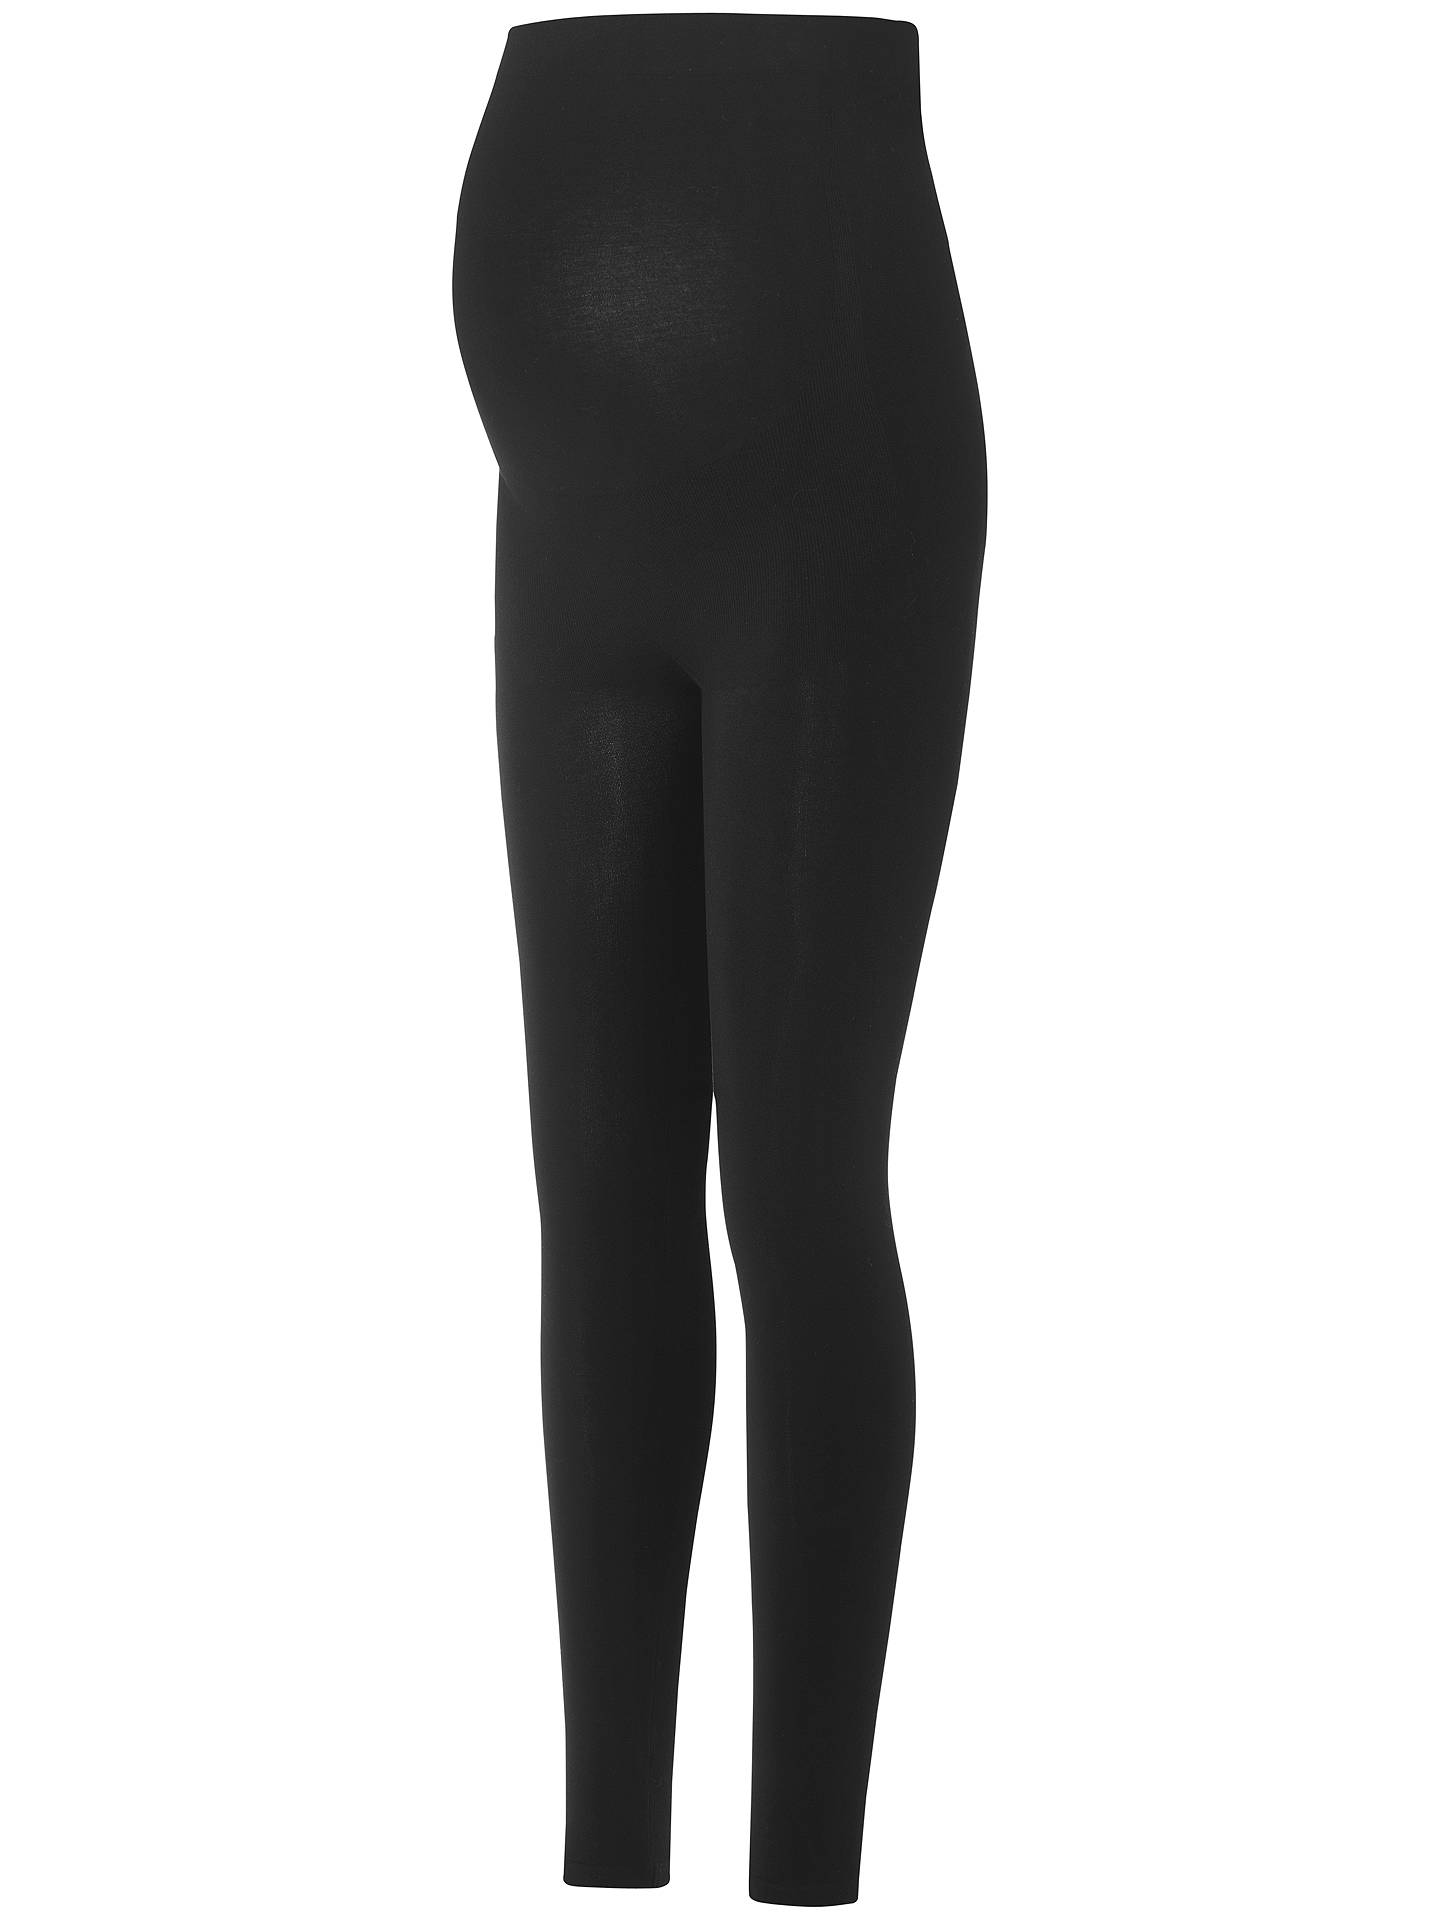 7c0de459f5178 ... Buy Séraphine Tammy Active Bamboo Maternity Leggings, Black, S-M Online  at johnlewis.com